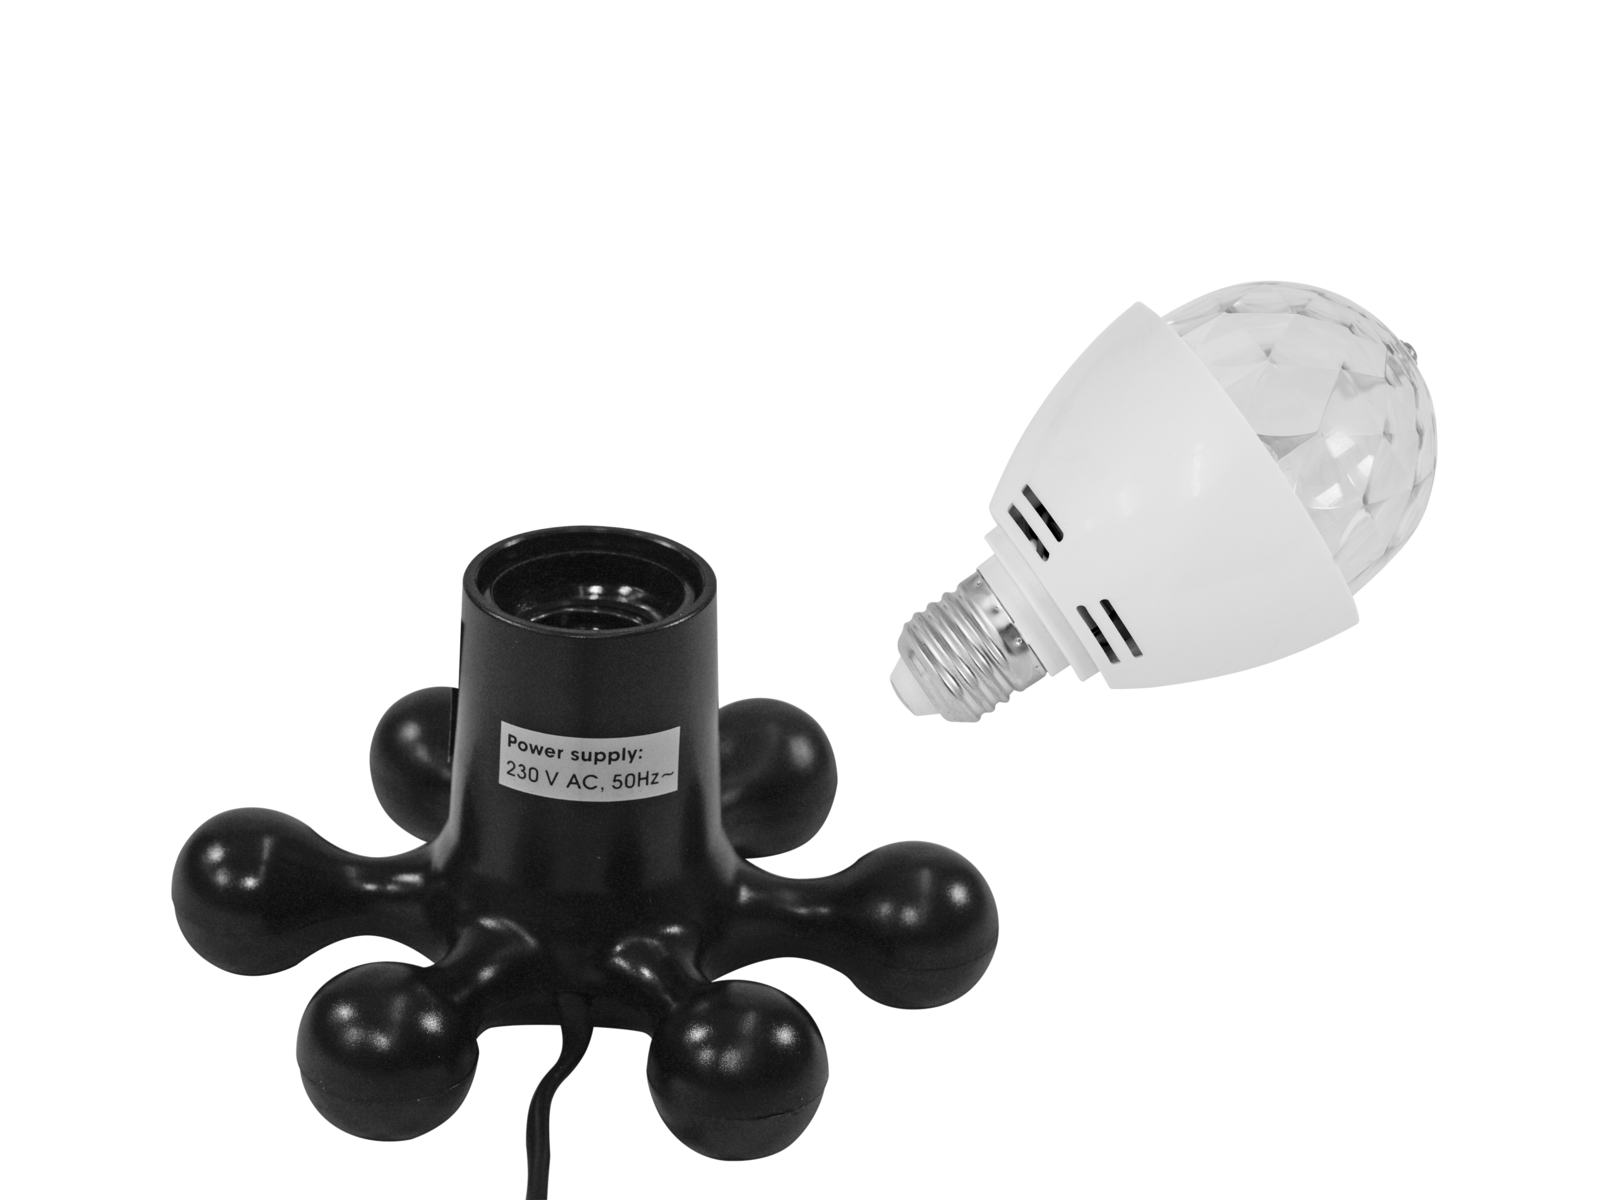 EUROLITE LED di Set BC-1 6400K + Hexopus base nera